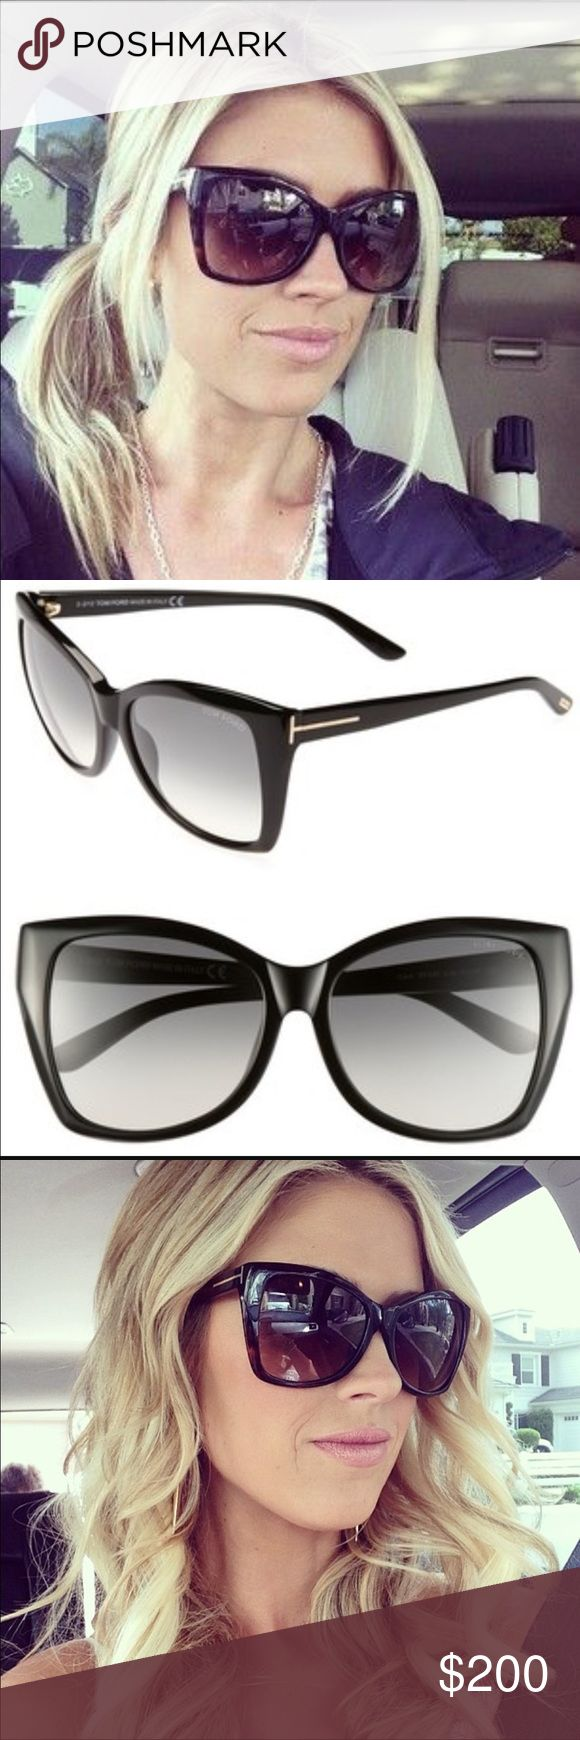 IN SEARCH OF TF Carli Sunglasses IN SEARCH OF i am not selling these so do · Sunglasses SaleTom Ford ... & 22 best Sunglasses images on Pinterest | Lenses Gucci sunglasses ... markmcfarlin.com